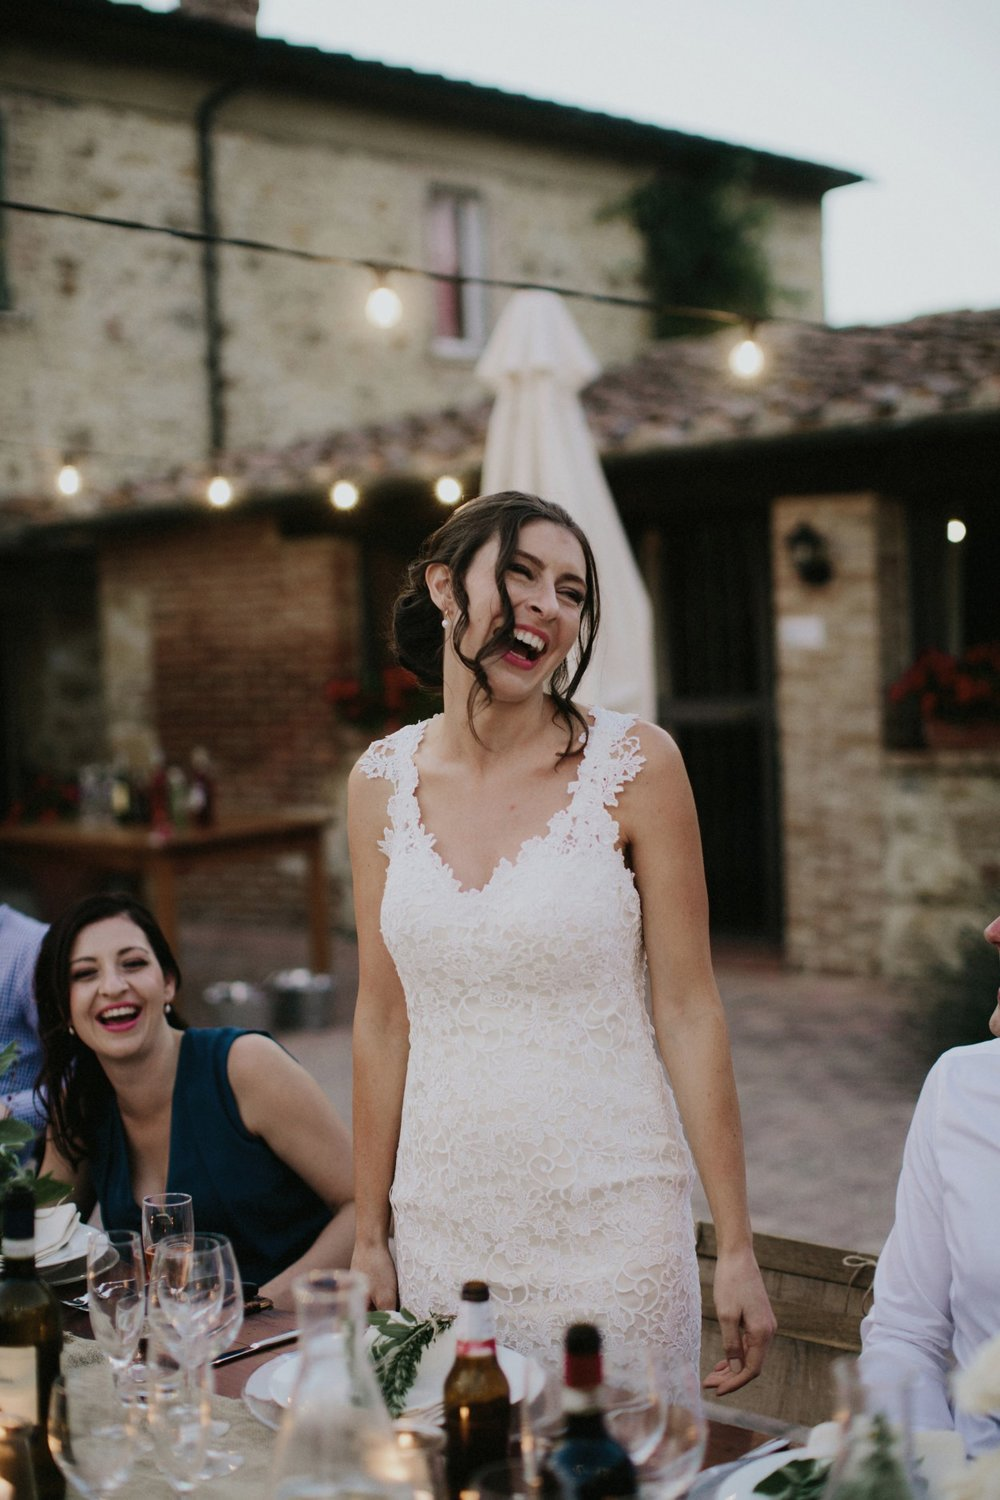 I-Got-You-Babe-Weddings-Tuscany-Italy-Destination-Wedding-Kahlia-Dan127.jpg